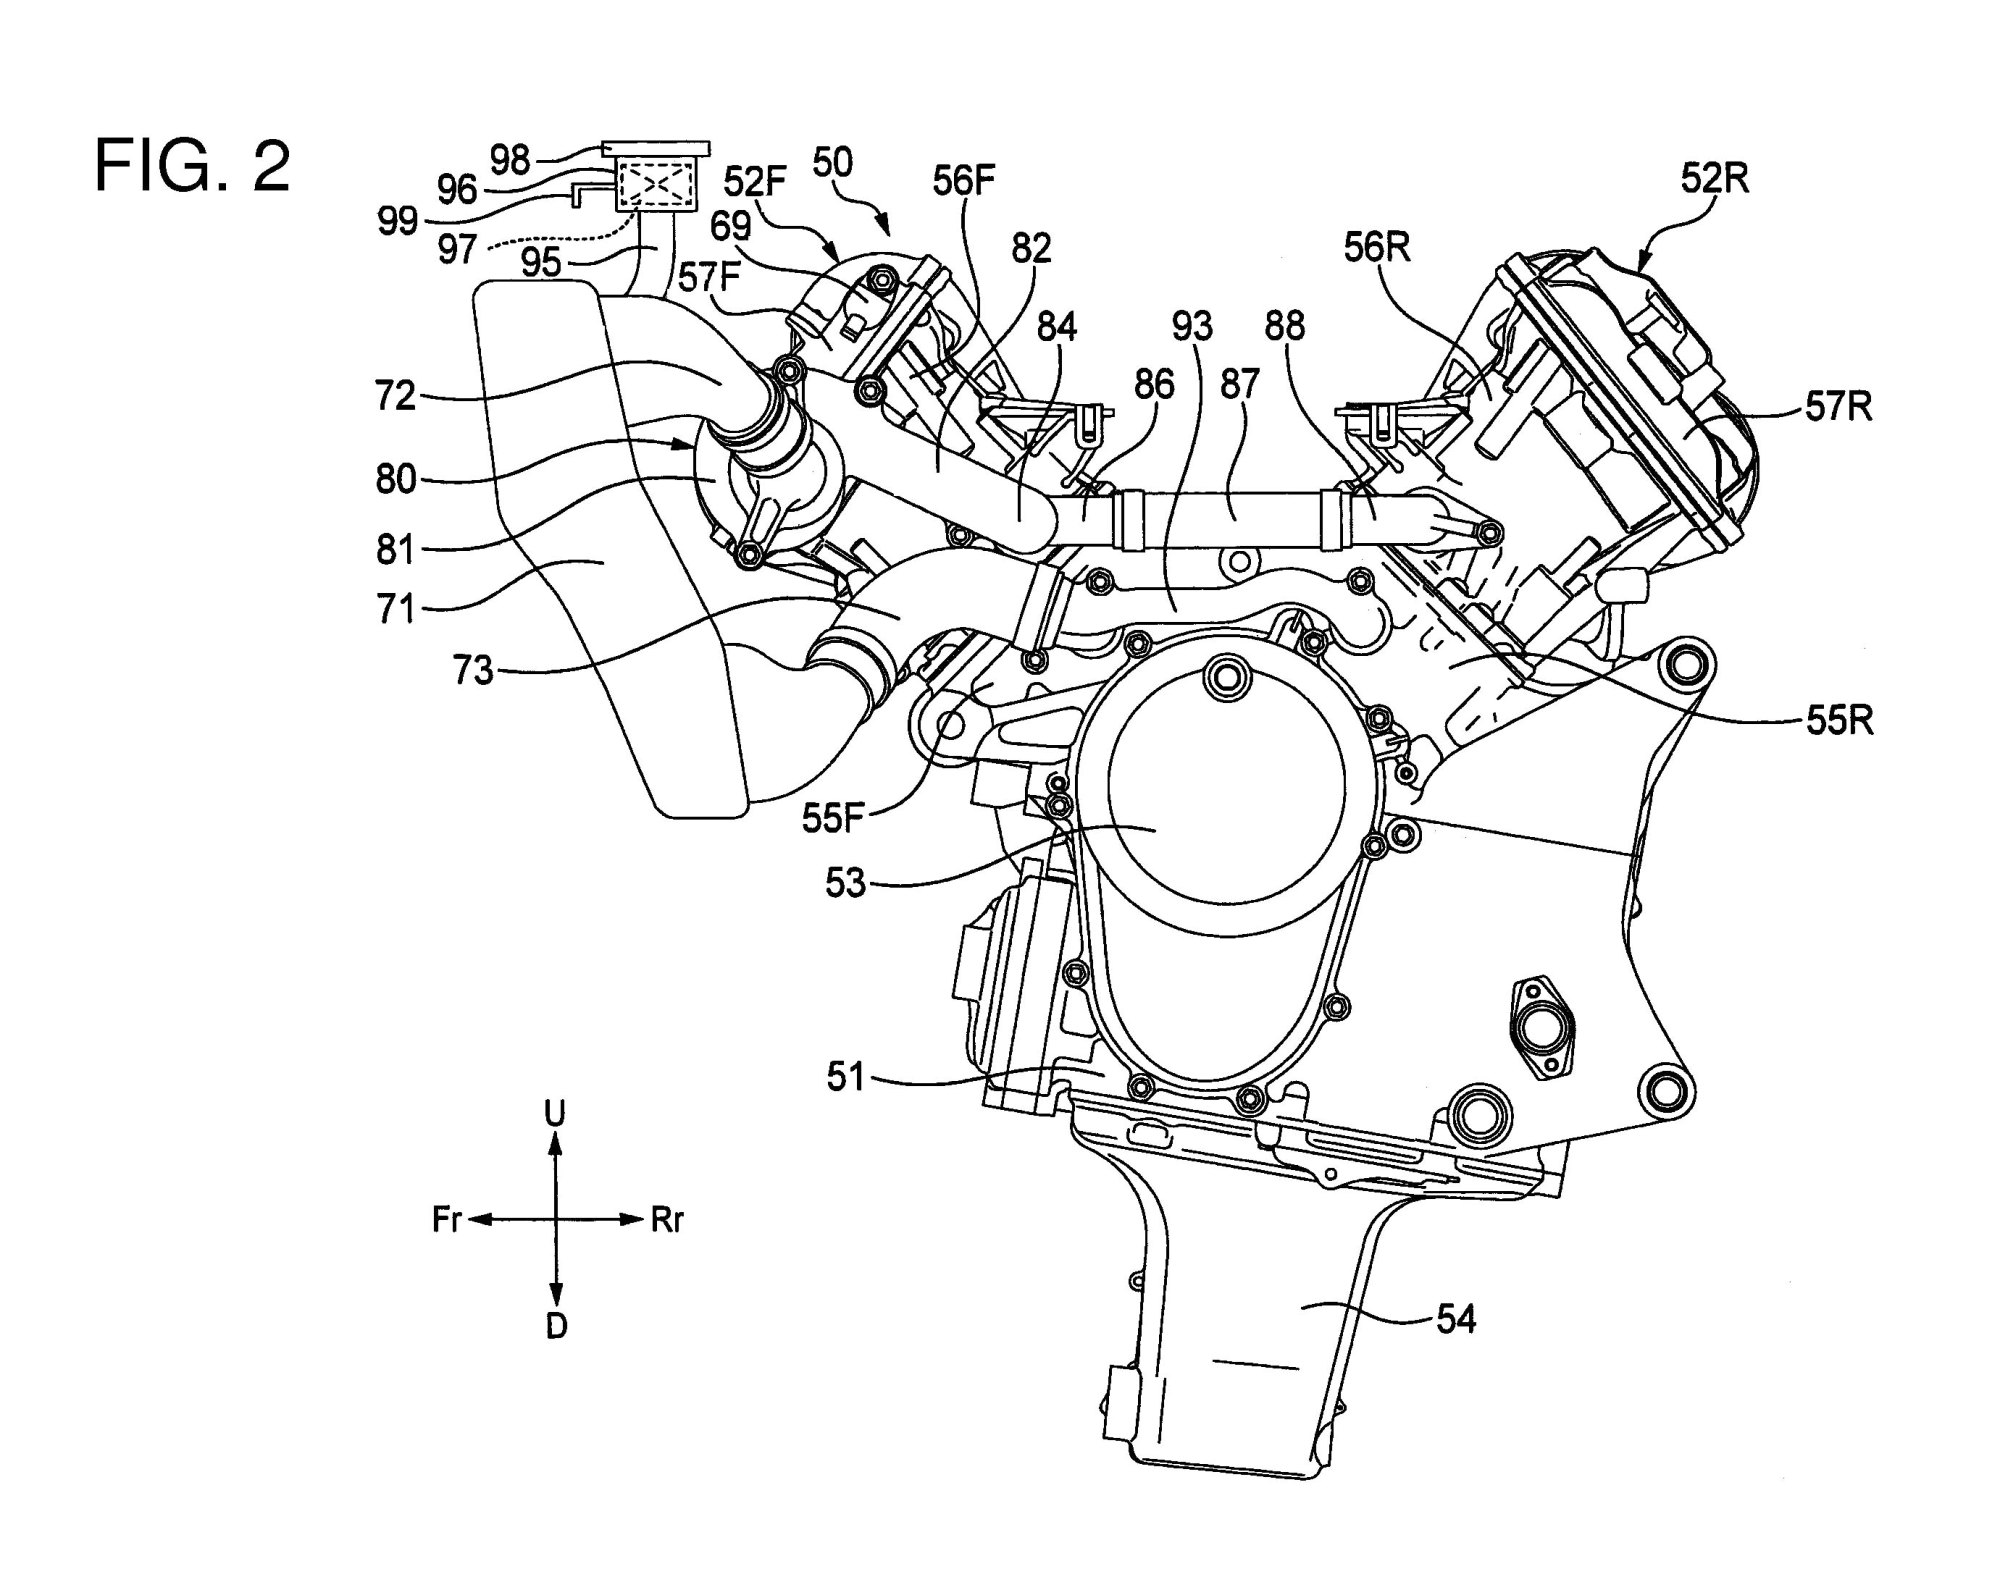 hight resolution of 2761x2196 honda v4 superbike engine outed in patent photos